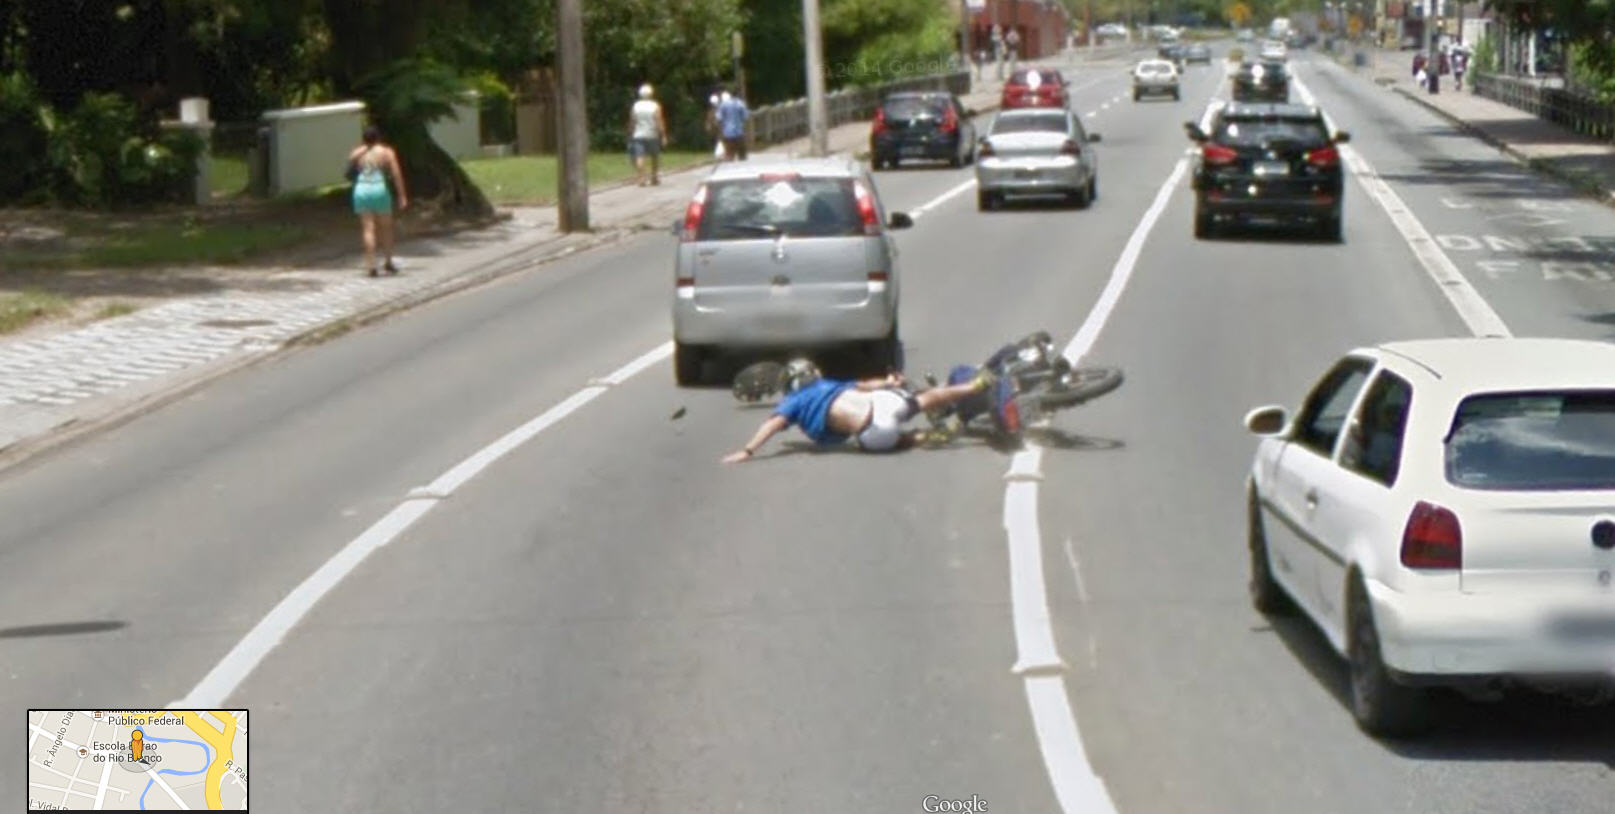 Motorcycle Accident Captured Frame by Frame via Google Street View